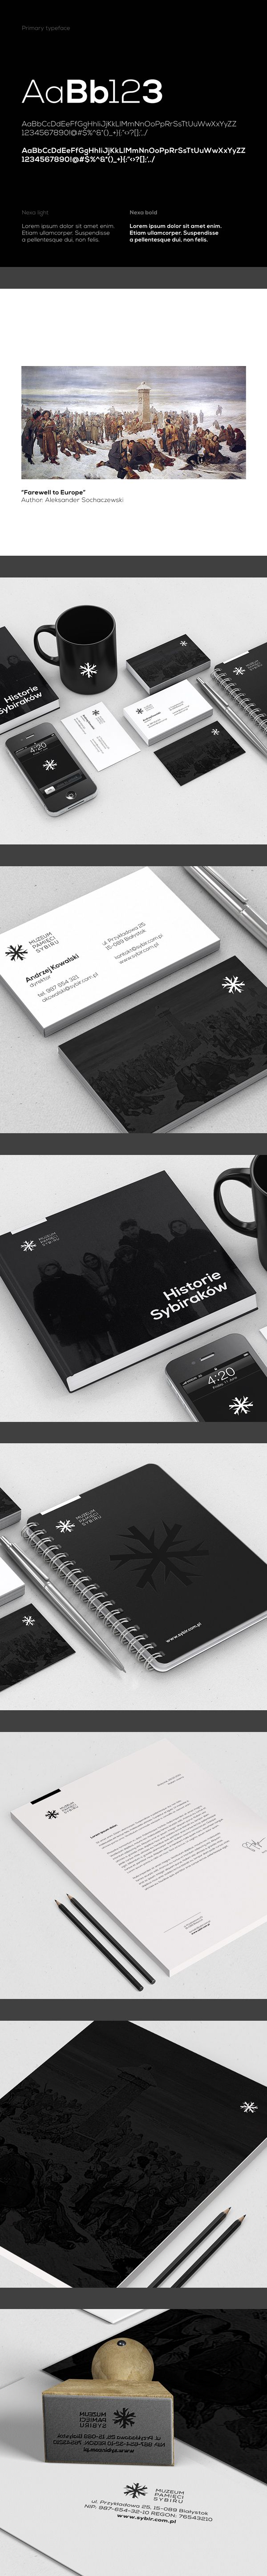 Beautiful work for the Memorial Museum of Siberia - branding by Łukasz Ociepka, via Behance